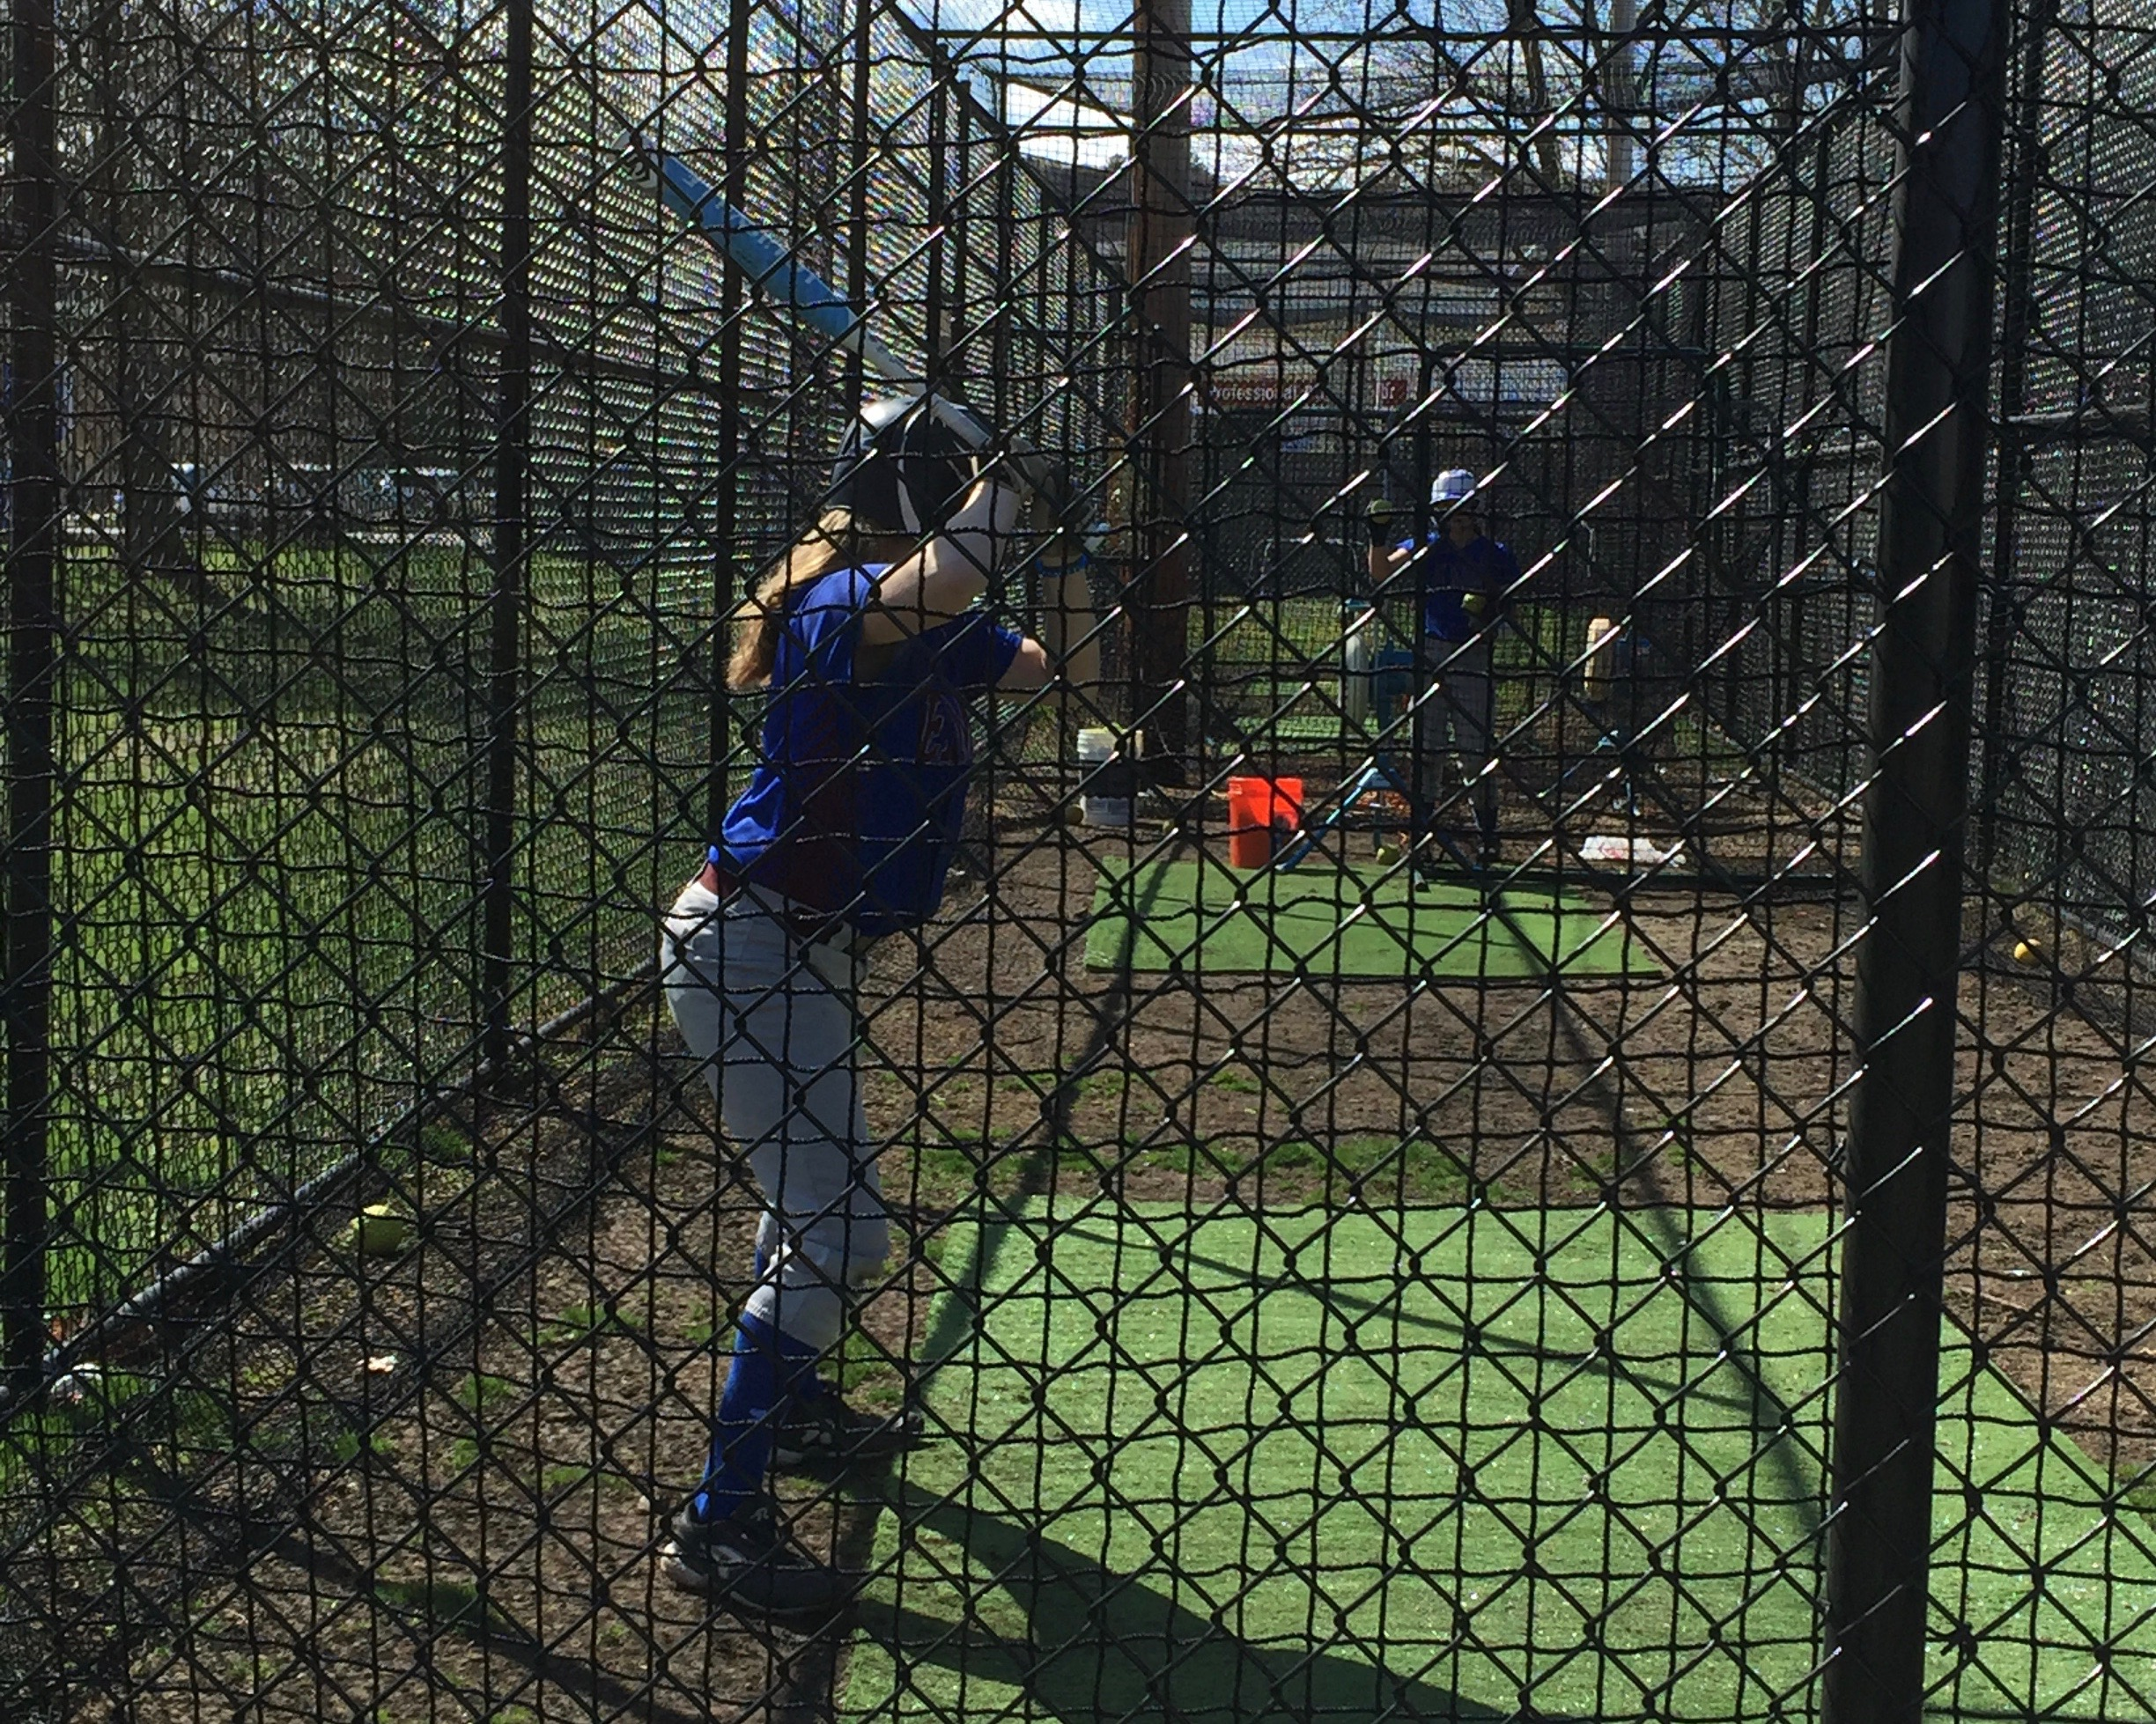 2015 softball batting cage